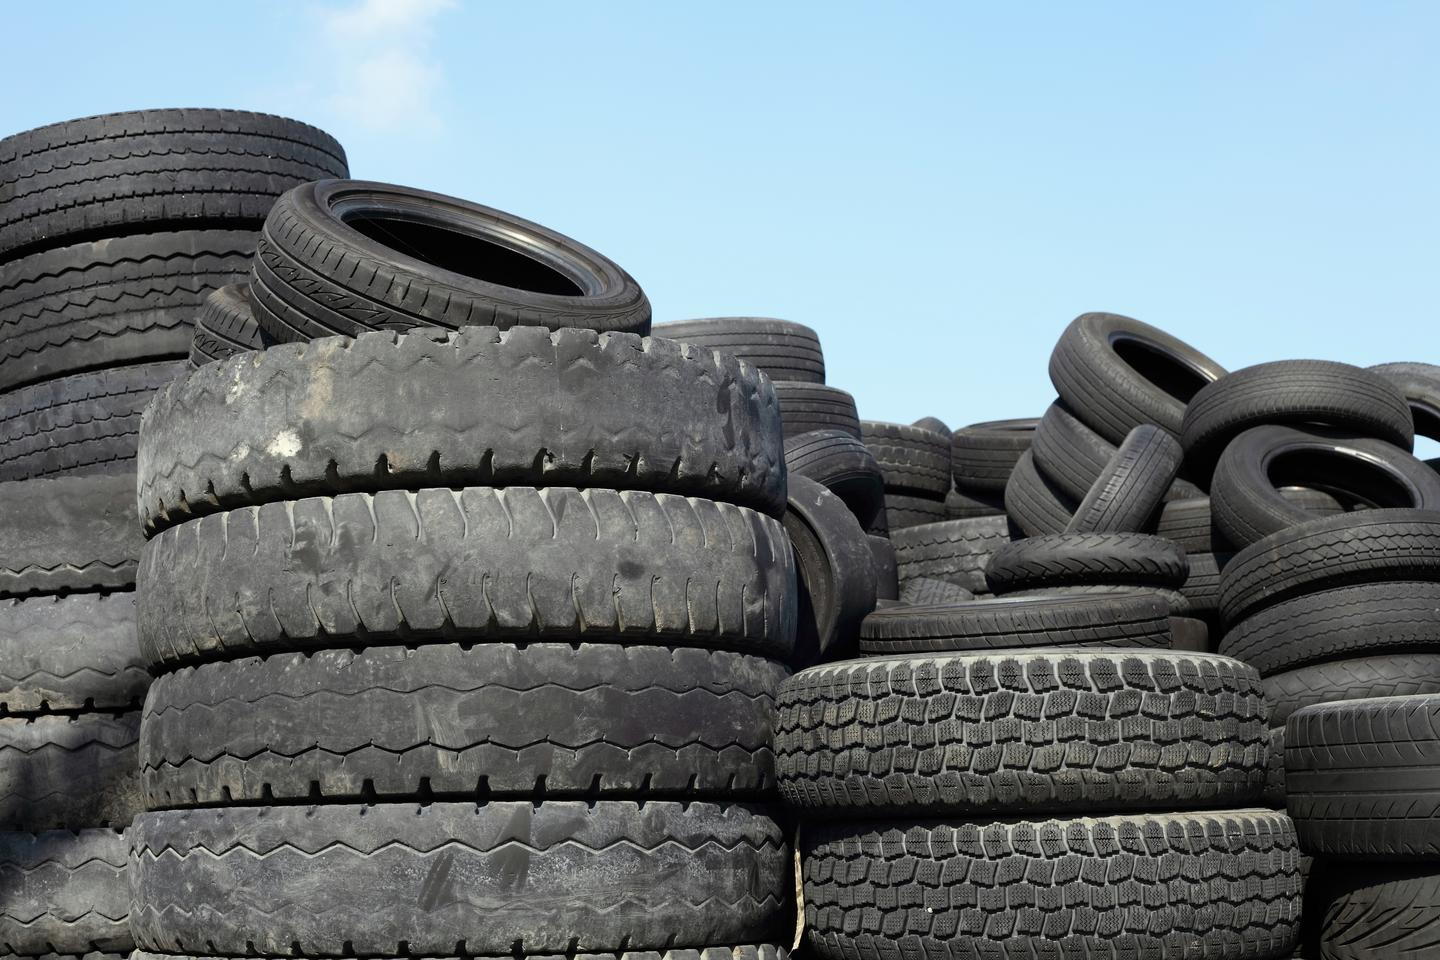 Along with using polymer fibers from tires to help release moisture from hot concrete, the scientists are also looking at using tire-derived steel fibers to help hold the material together